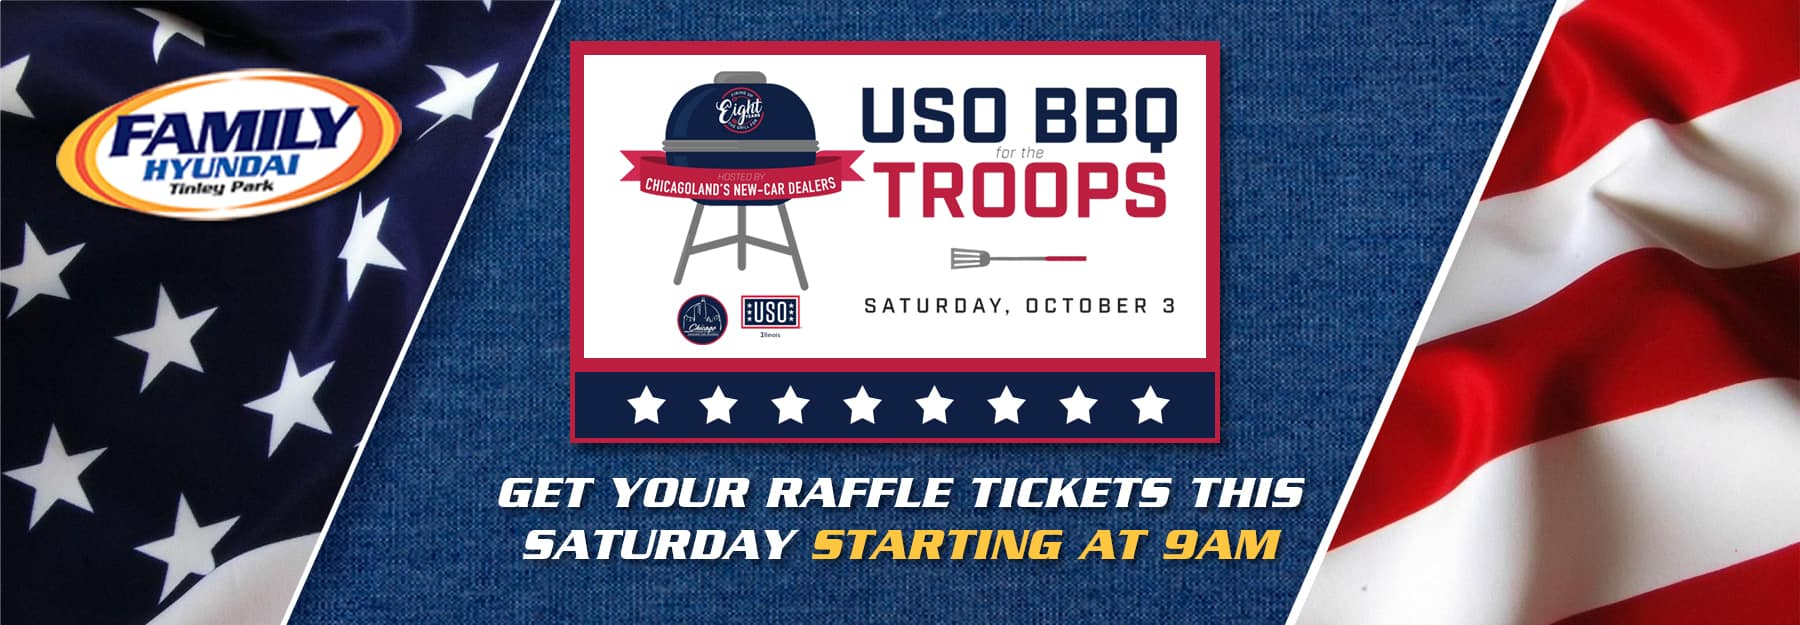 USO BBQ For the Troops at Family Hyundai